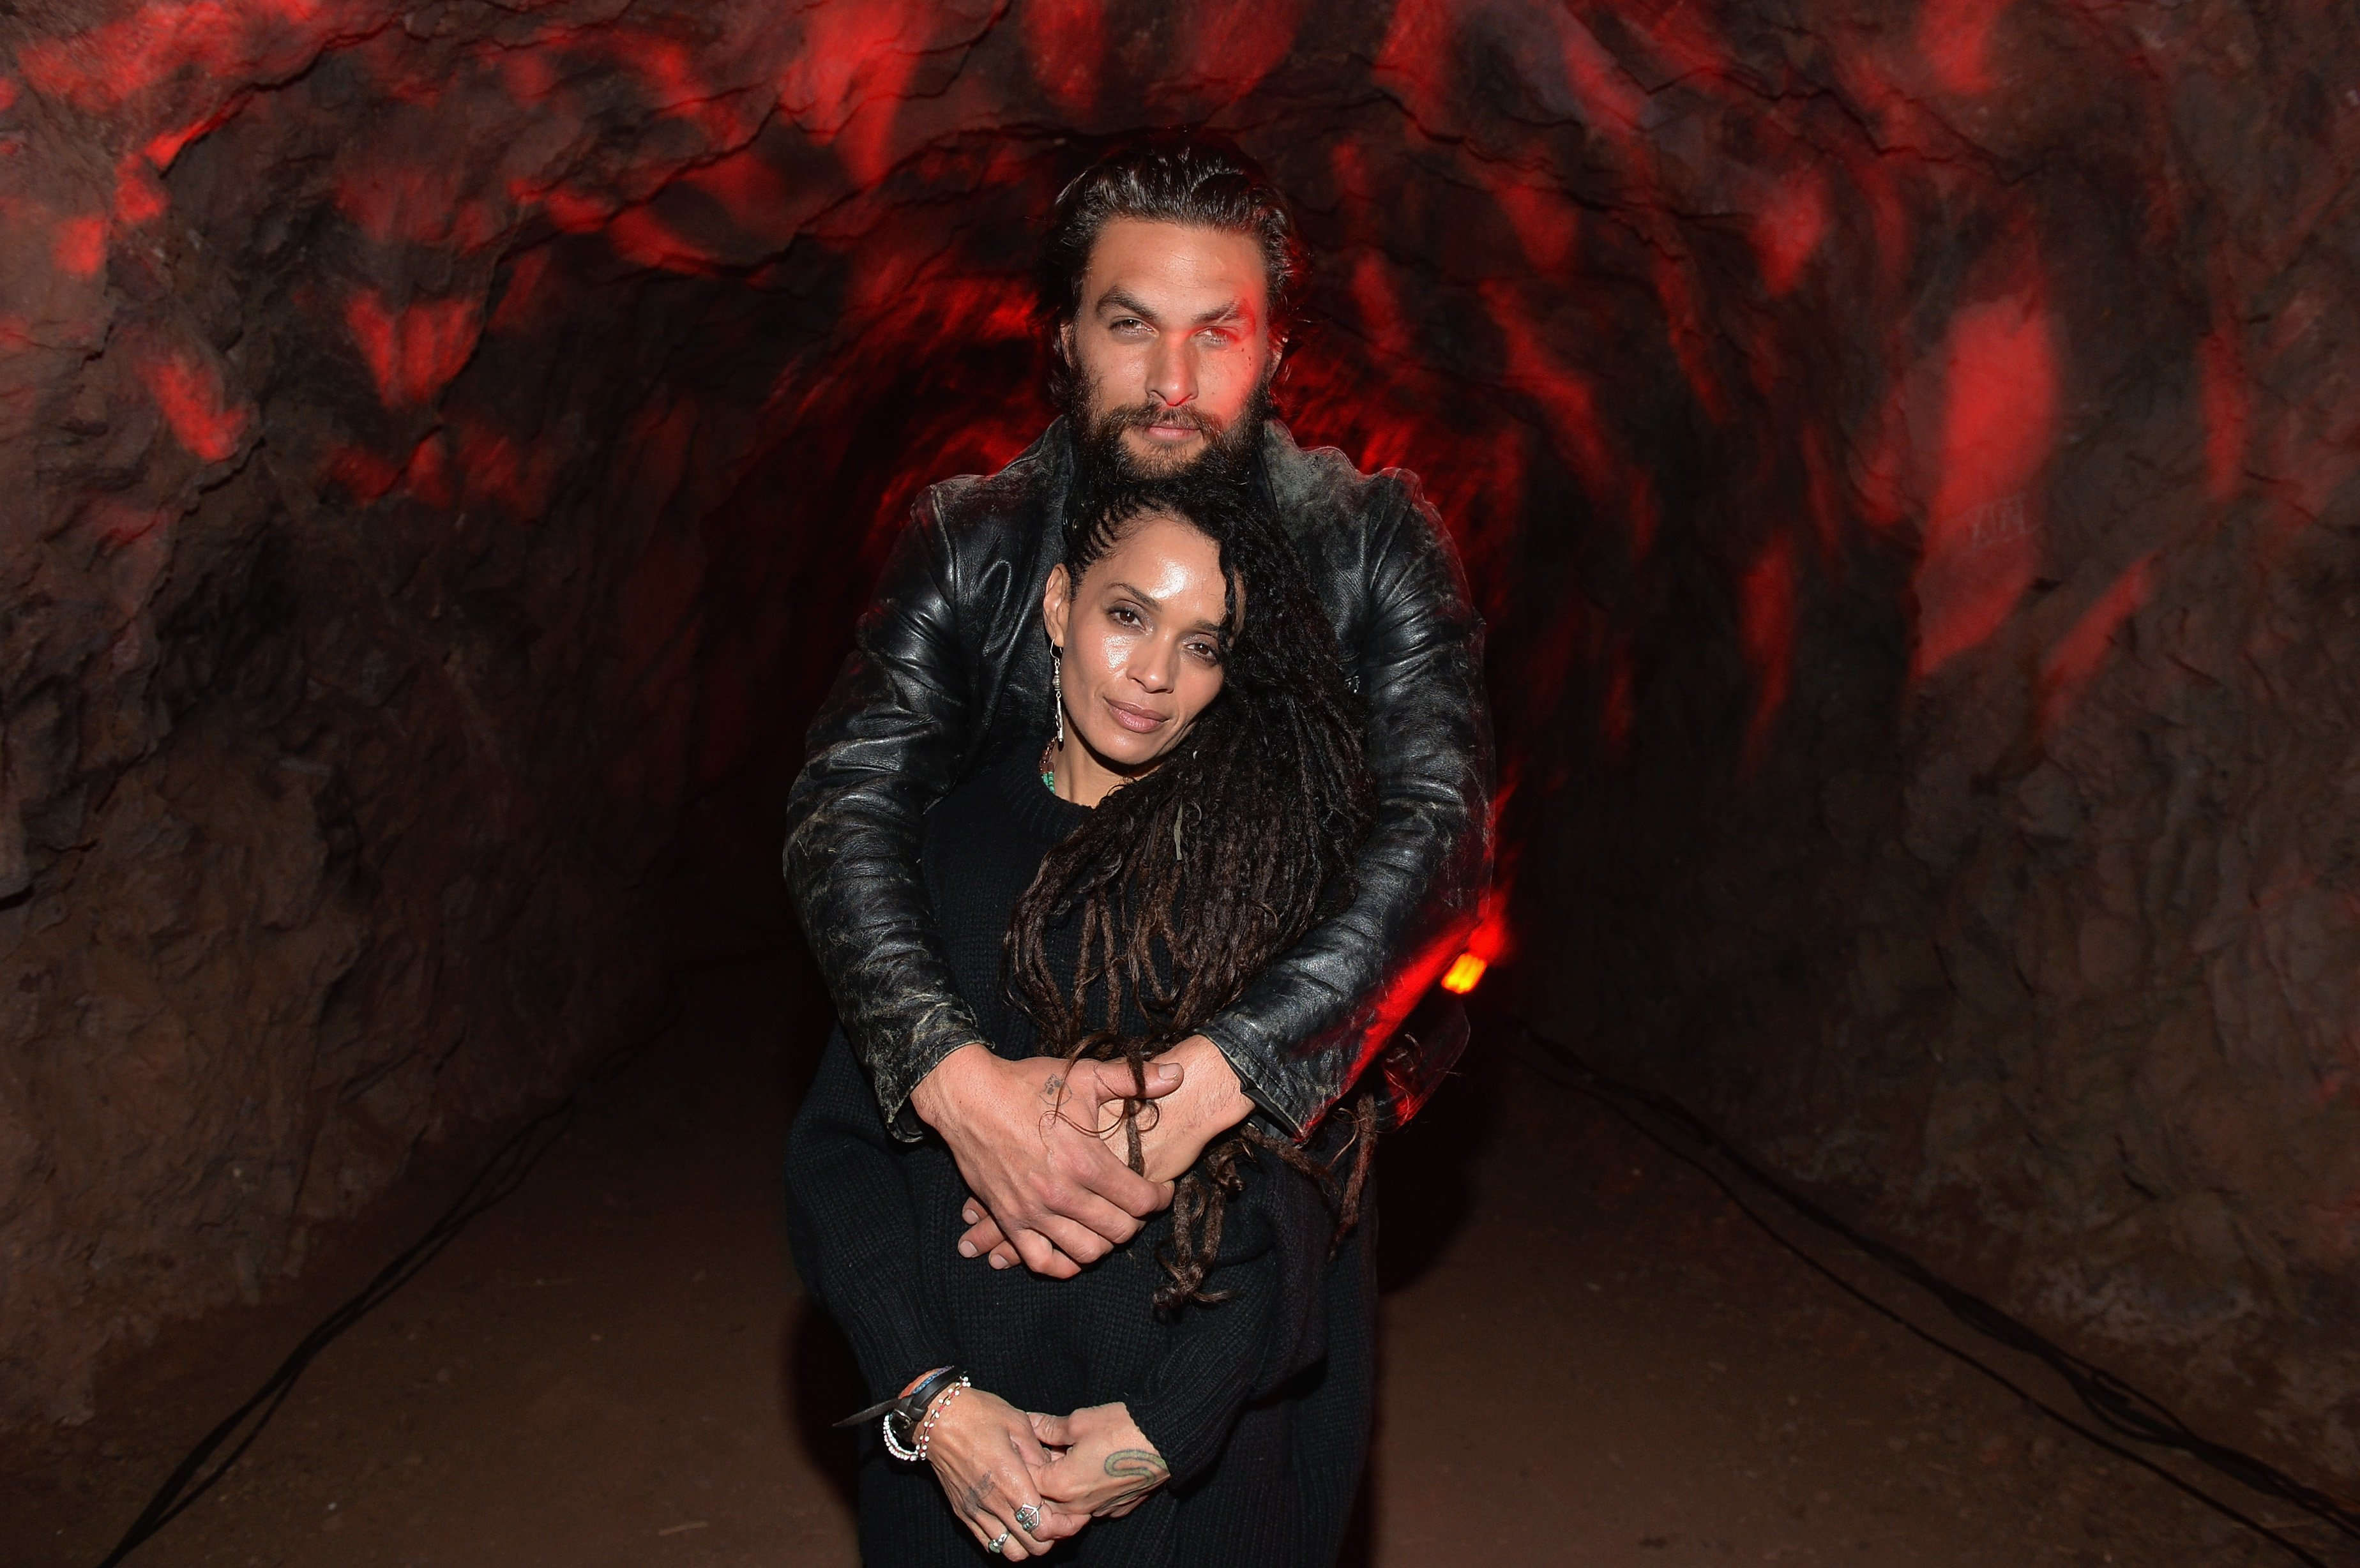 LIsa Bonet and Jason Momoa during a 2014 screening event in Los Angeles. | Photo: Getty Images